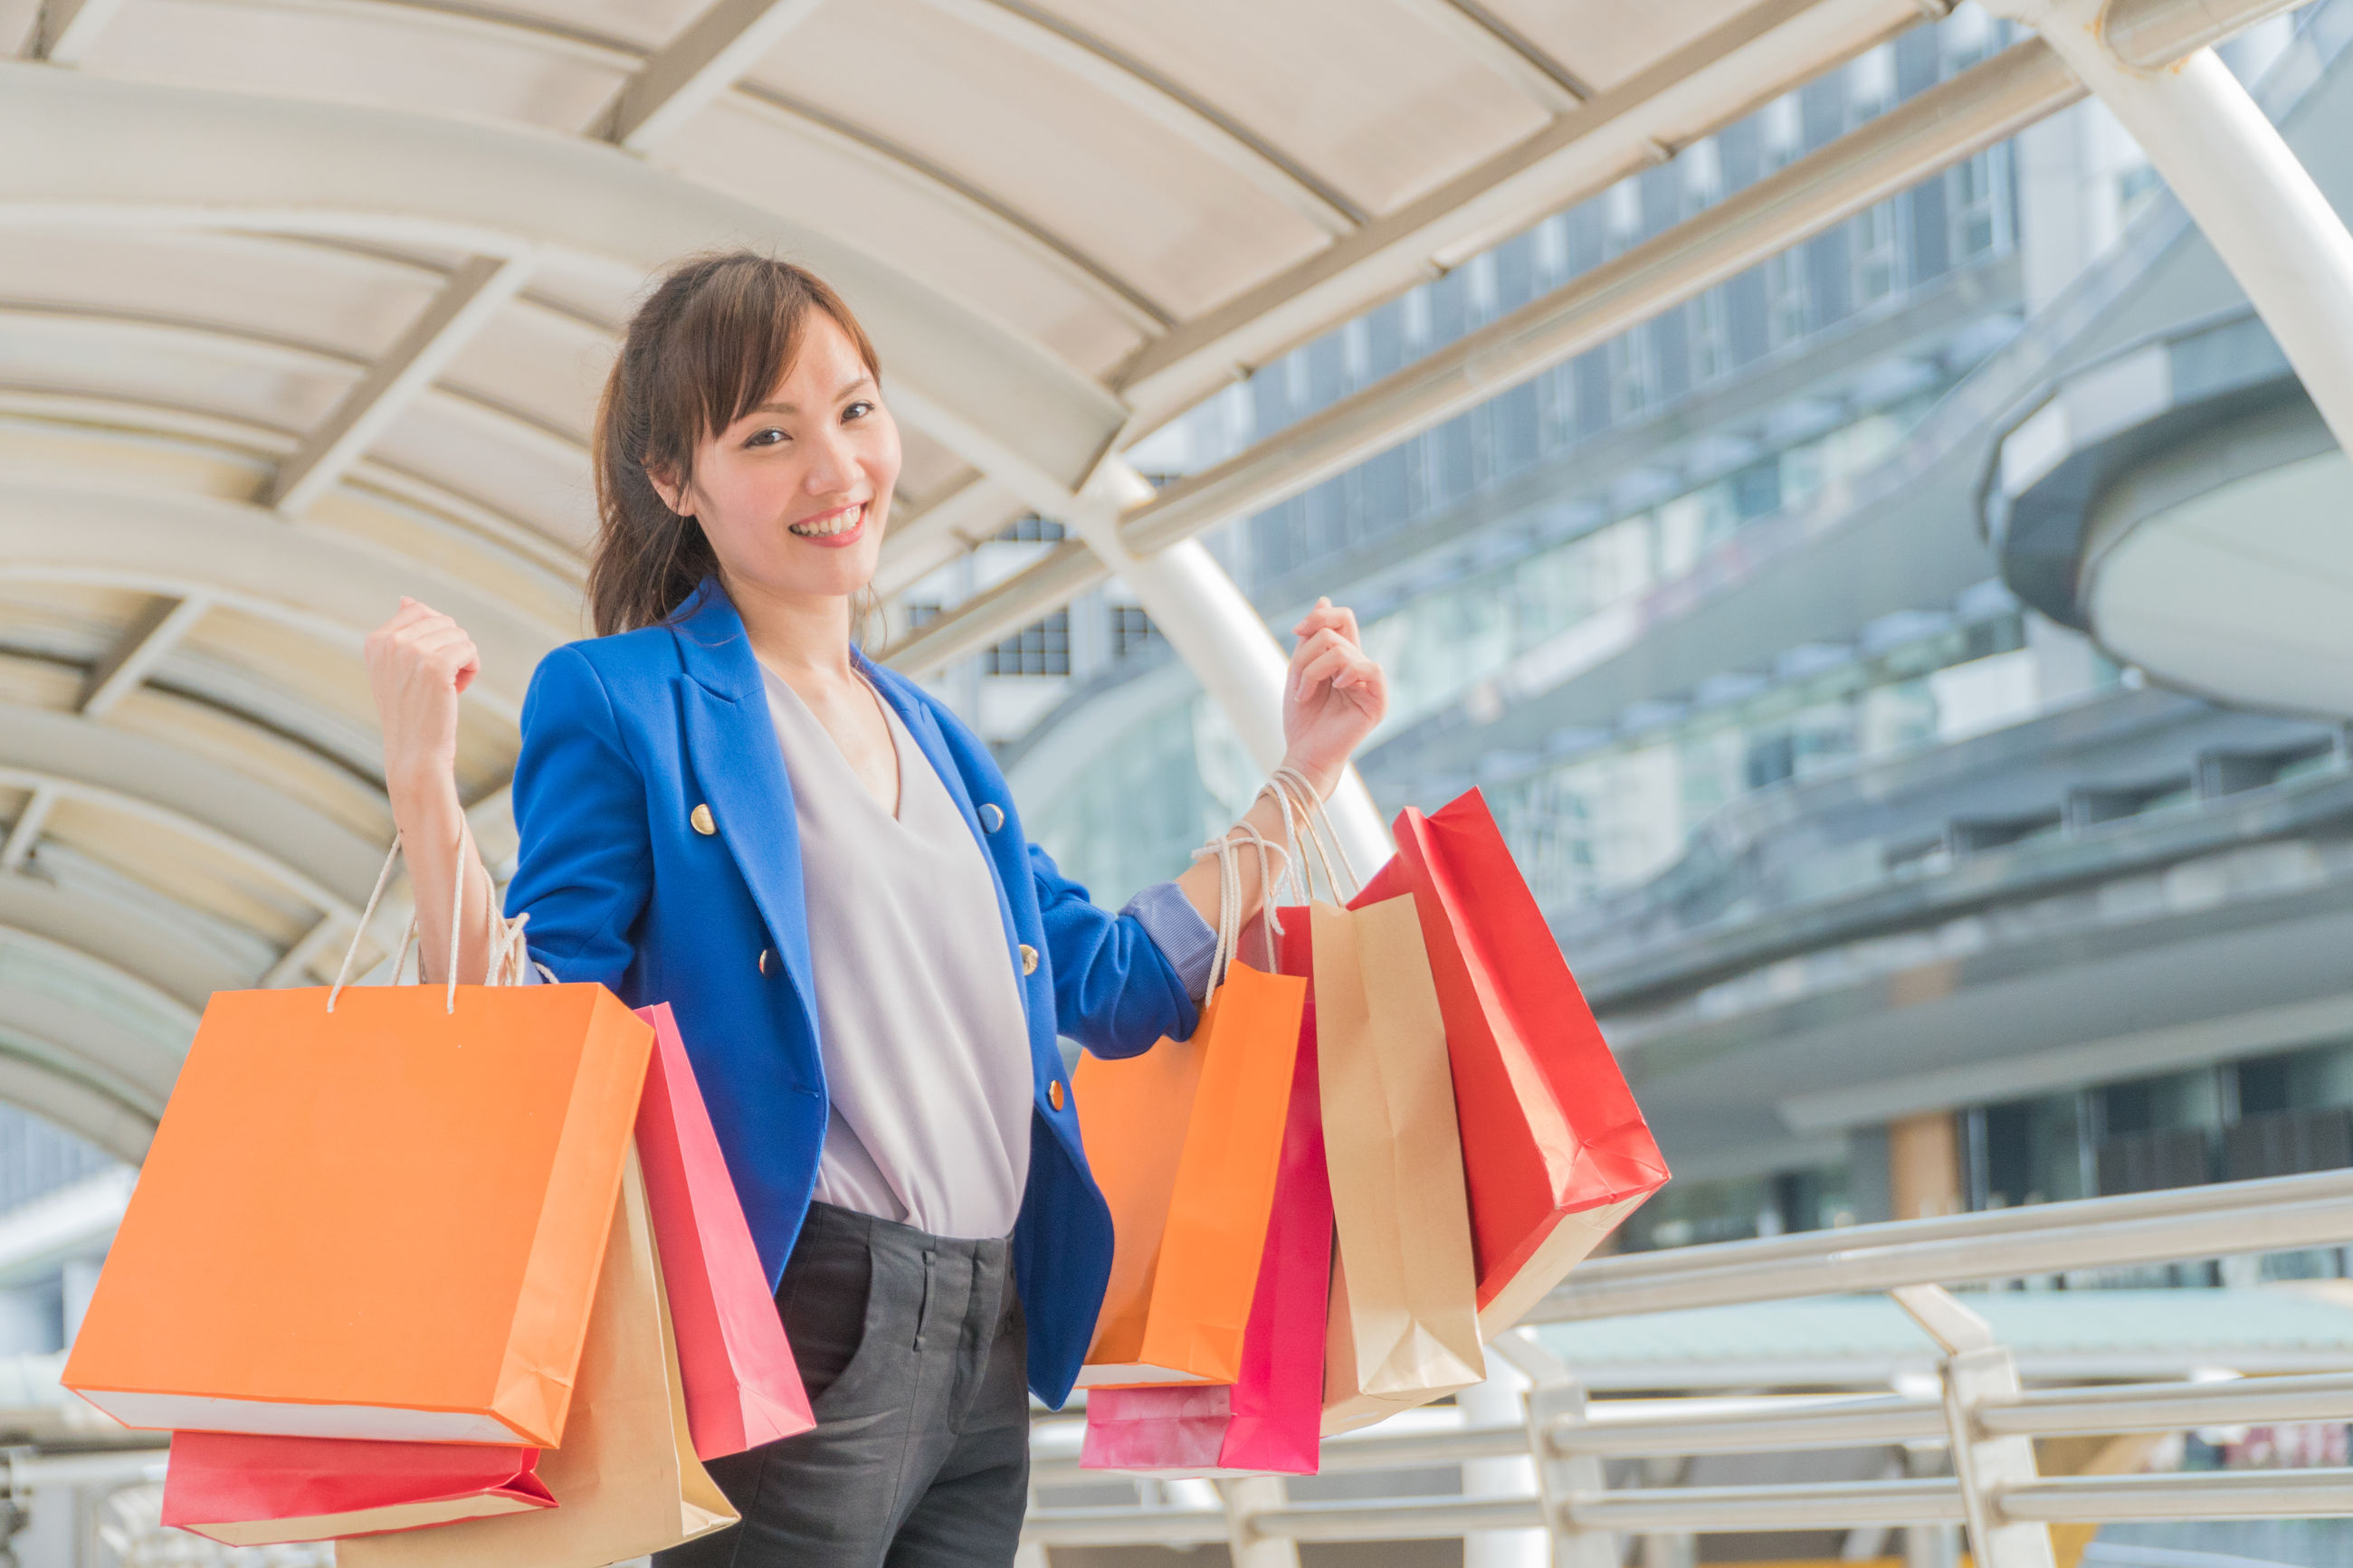 Portrait of smiling woman holding shopping bags while standing on footbridge in city